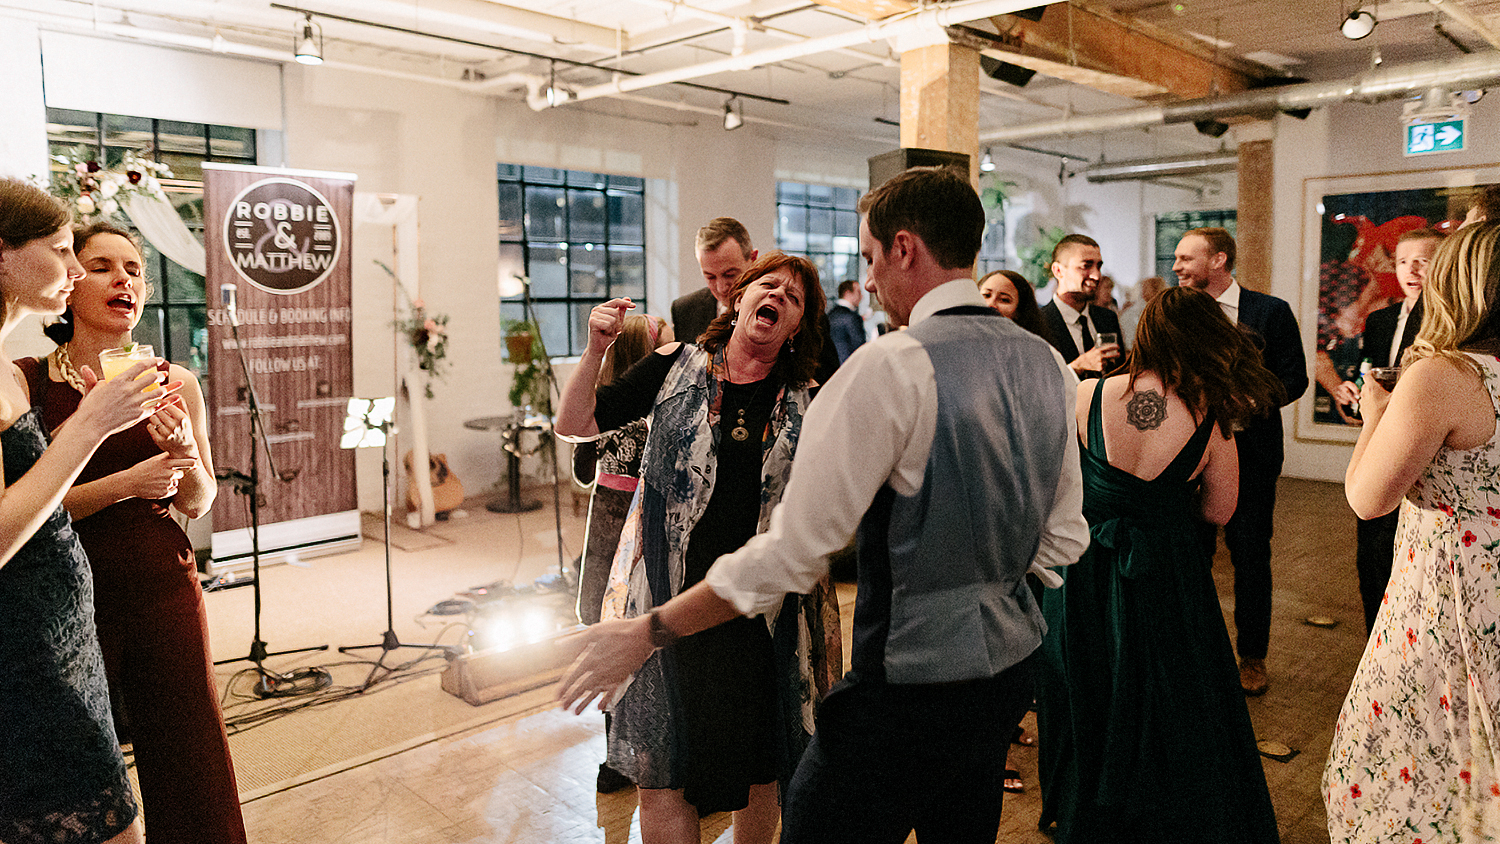 East-Room-Wedding-Queen-Street-East-Toronto-Intimate-Industrial-Wedding-Venue-Reception-Details-Grand-Electric-Food-Truck-Catering-candid-moments-wedding-photography-candid-dance-party-11.jpg